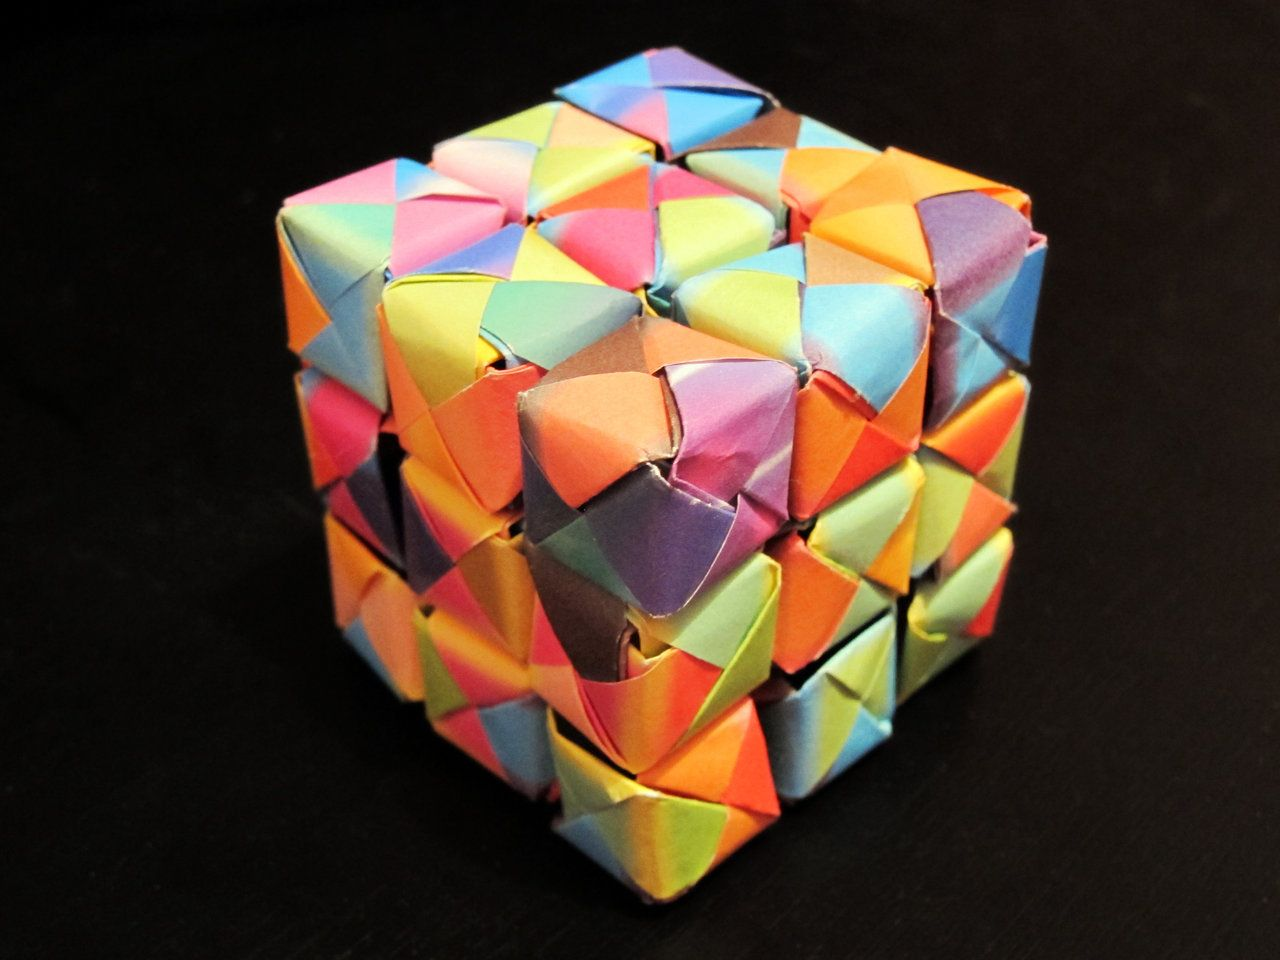 In japan today december16 is the anniversary of the paper in in japan today december16 is the anniversary of the paper in particular origami jeuxipadfo Image collections